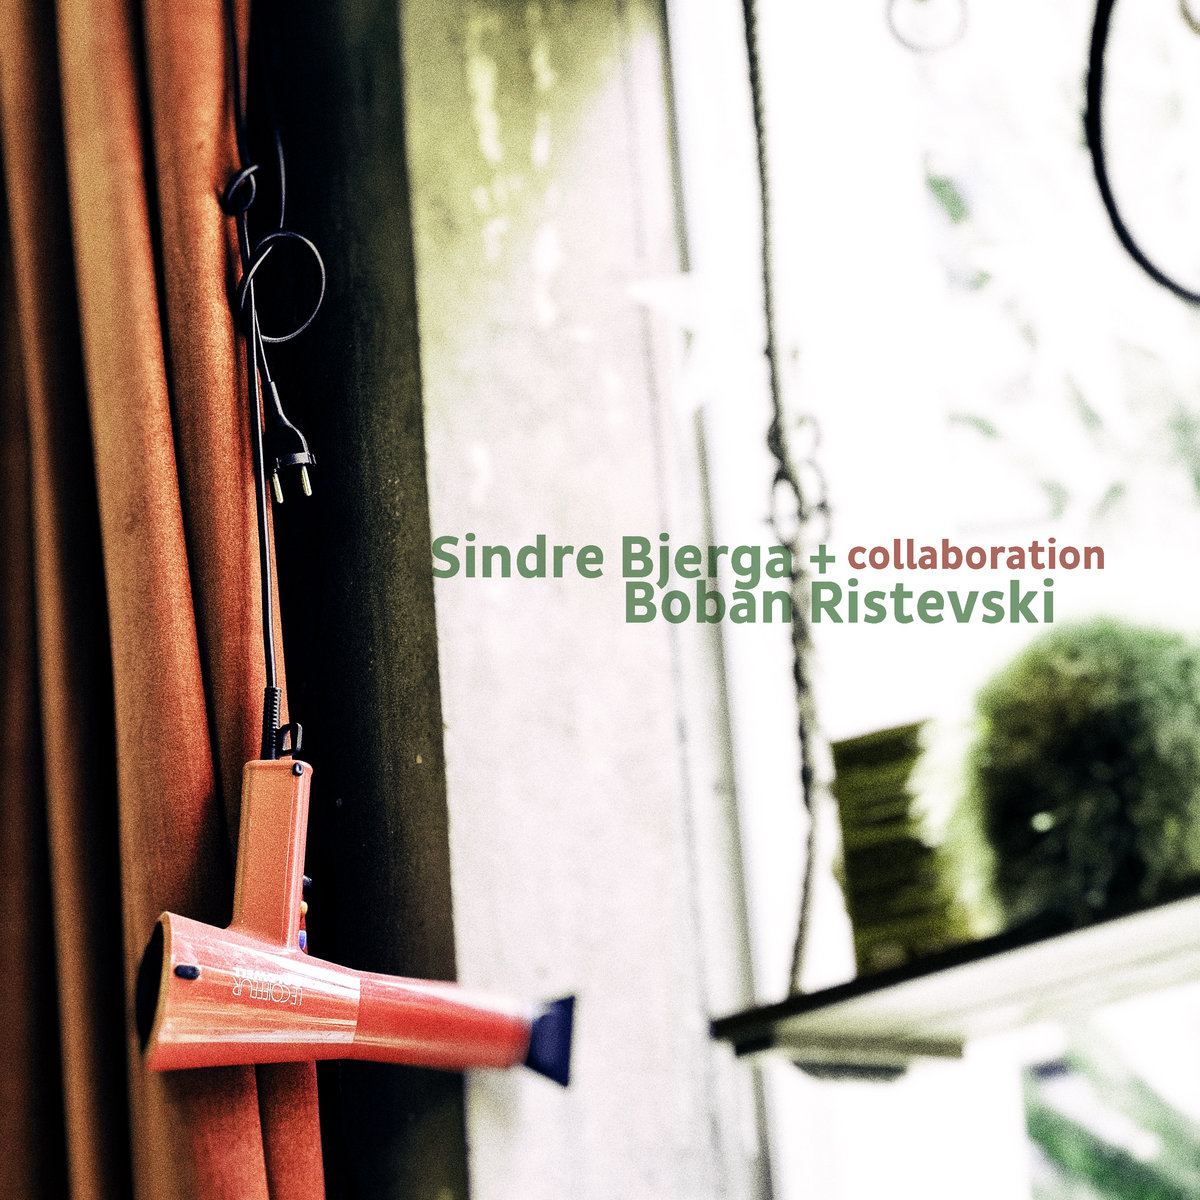 Sindre Bjerga + Boban Ristevski – collaboration